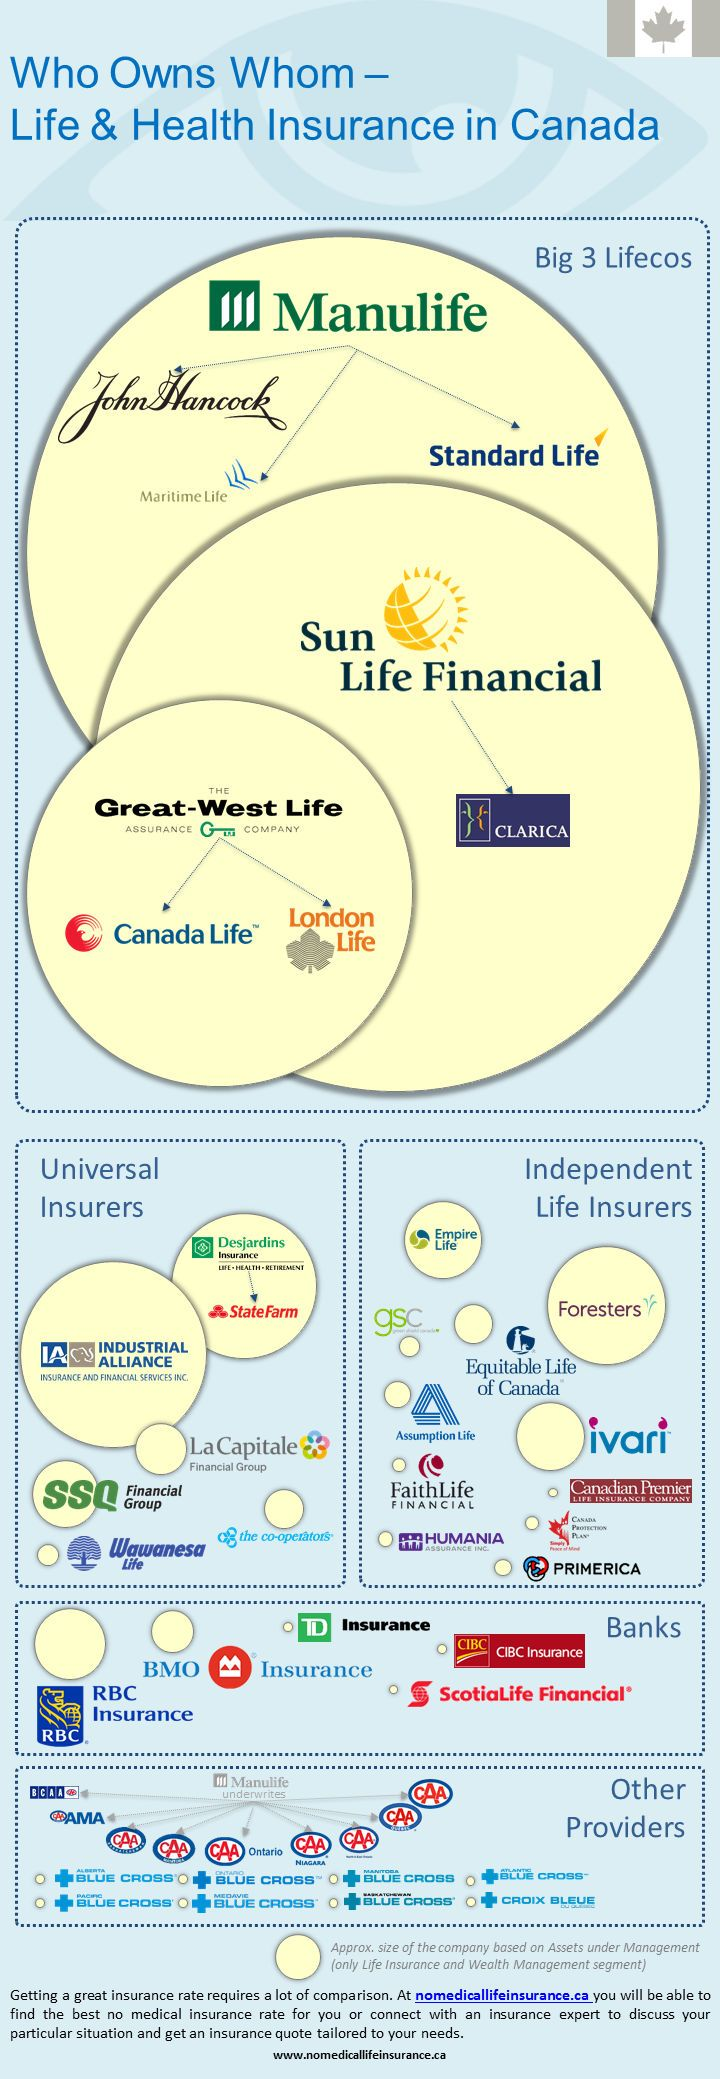 Who Owns Whom On A Canadian Life Insurance Market Life Insurance